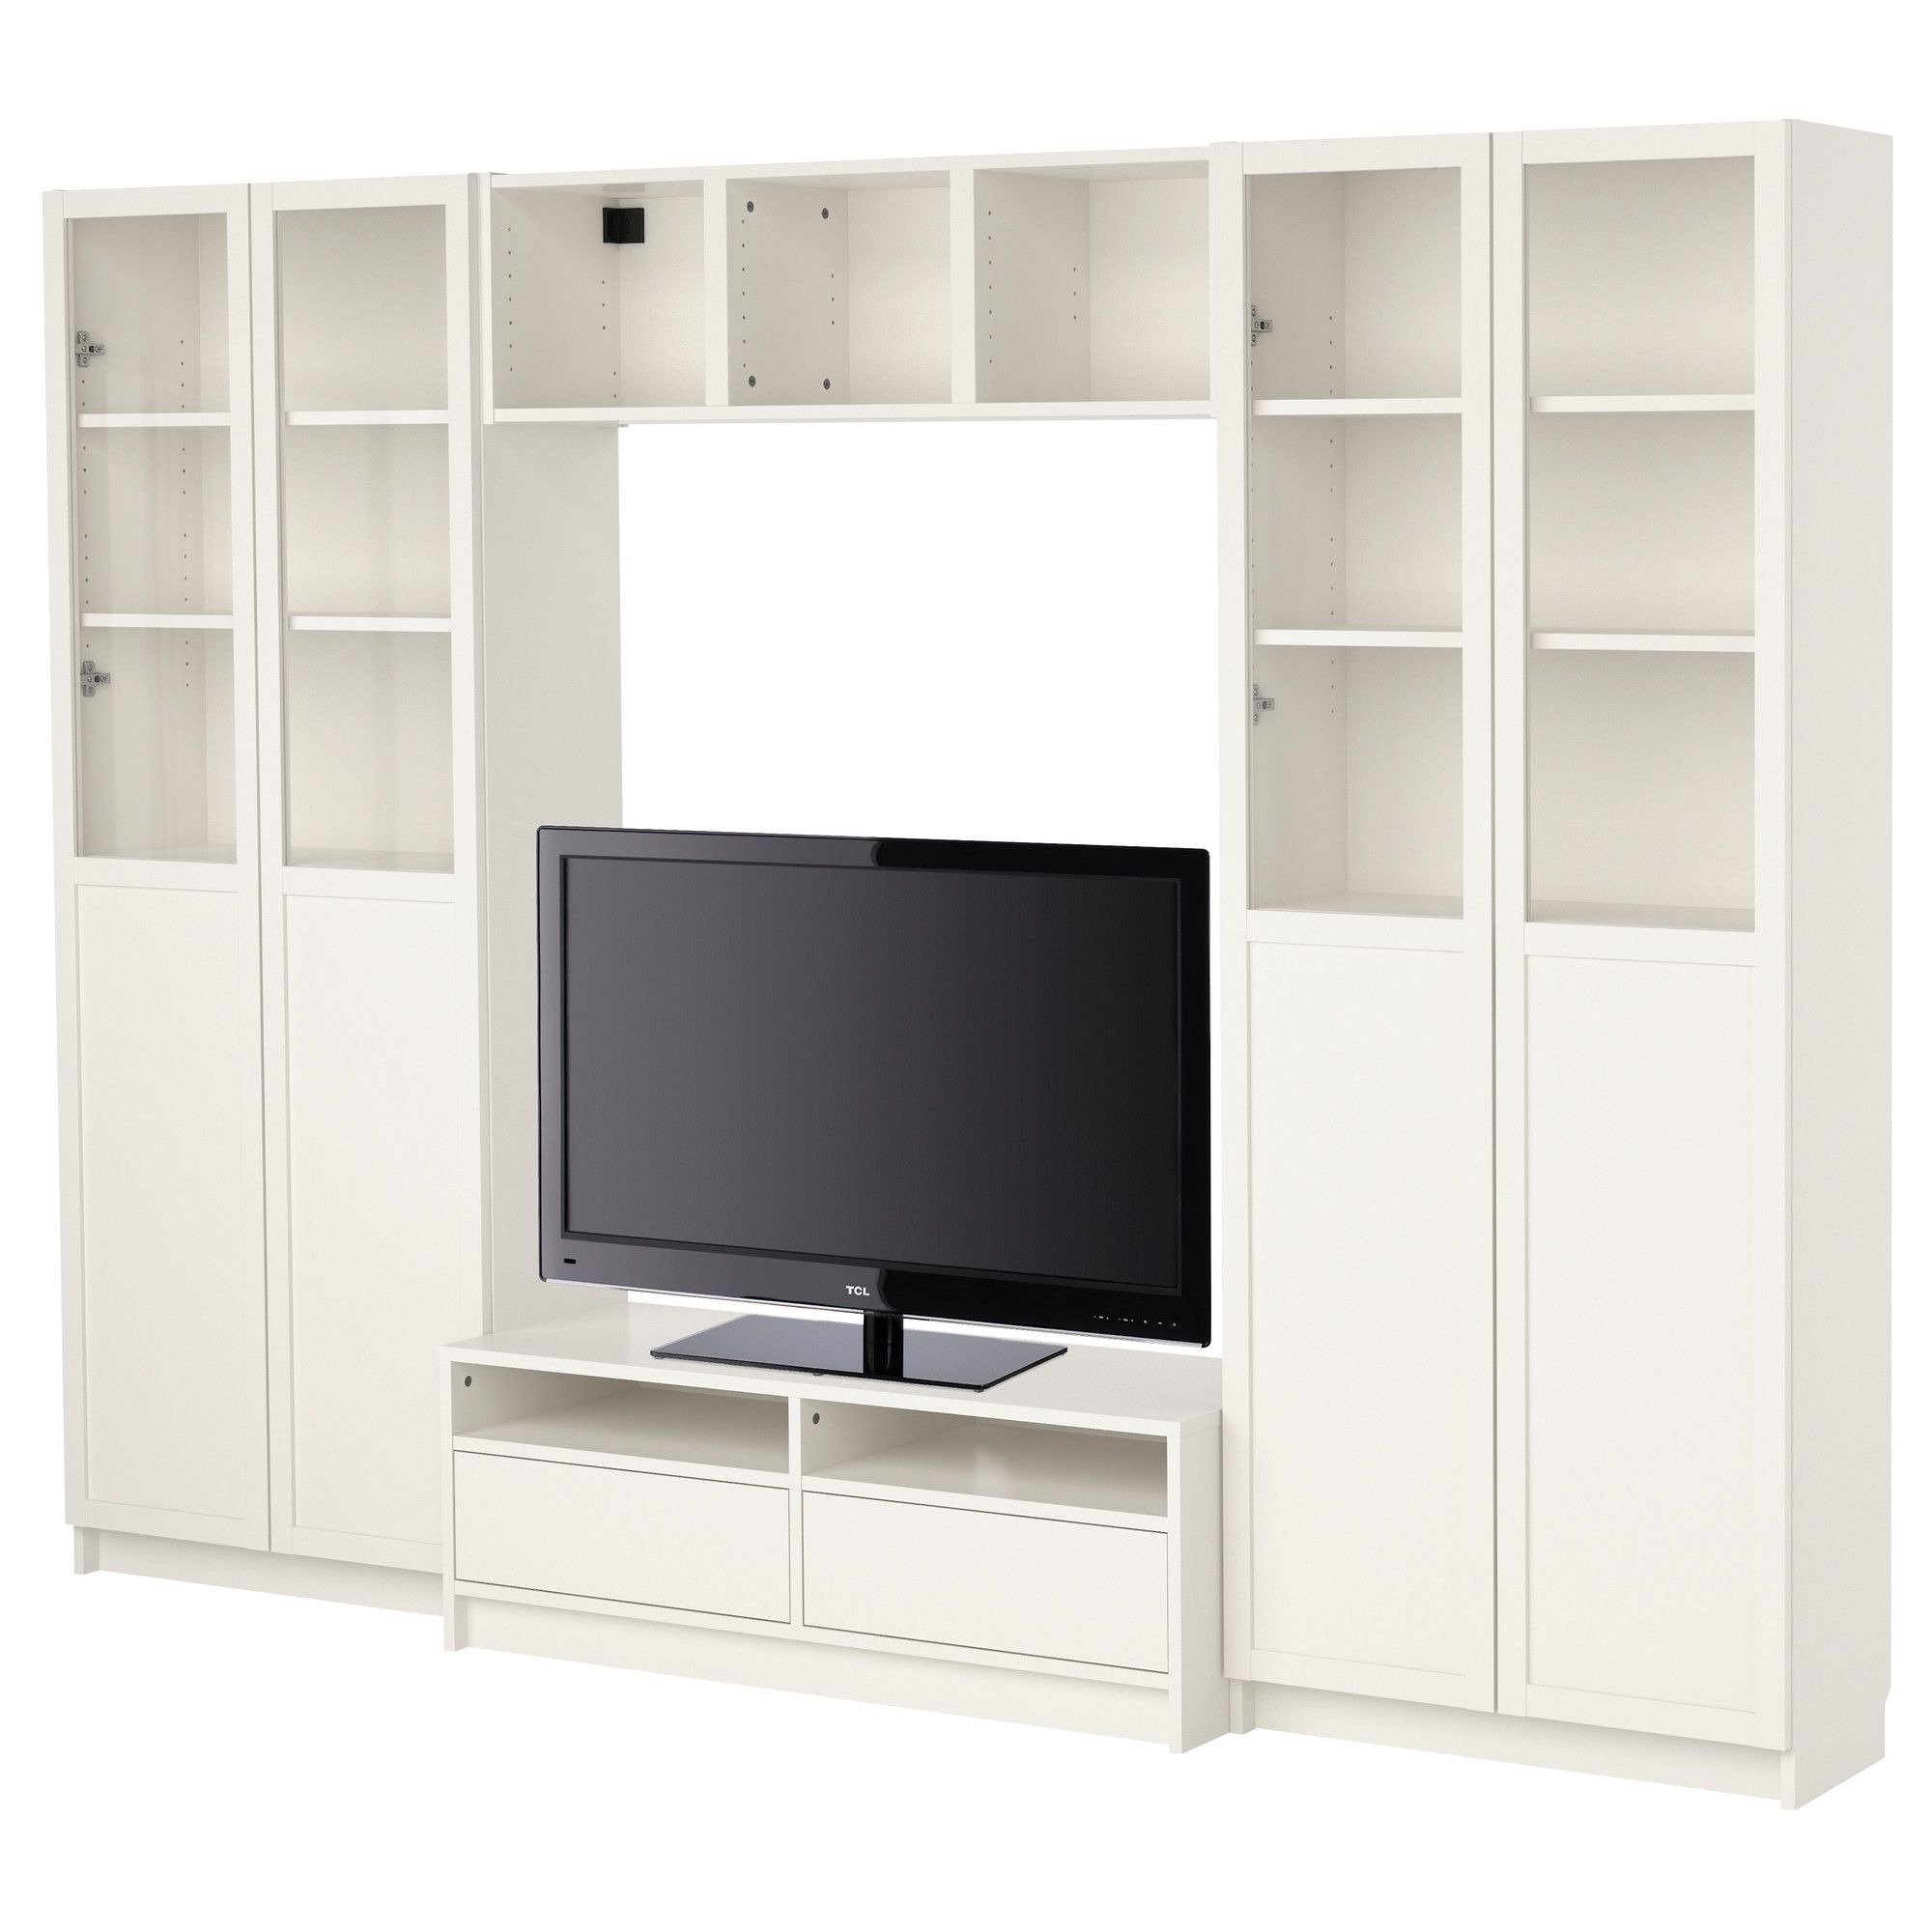 Tv Kast Wit Ikea Lack.Us Furniture And Home Furnishings Ikea Billy Bookcase Ikea Tv